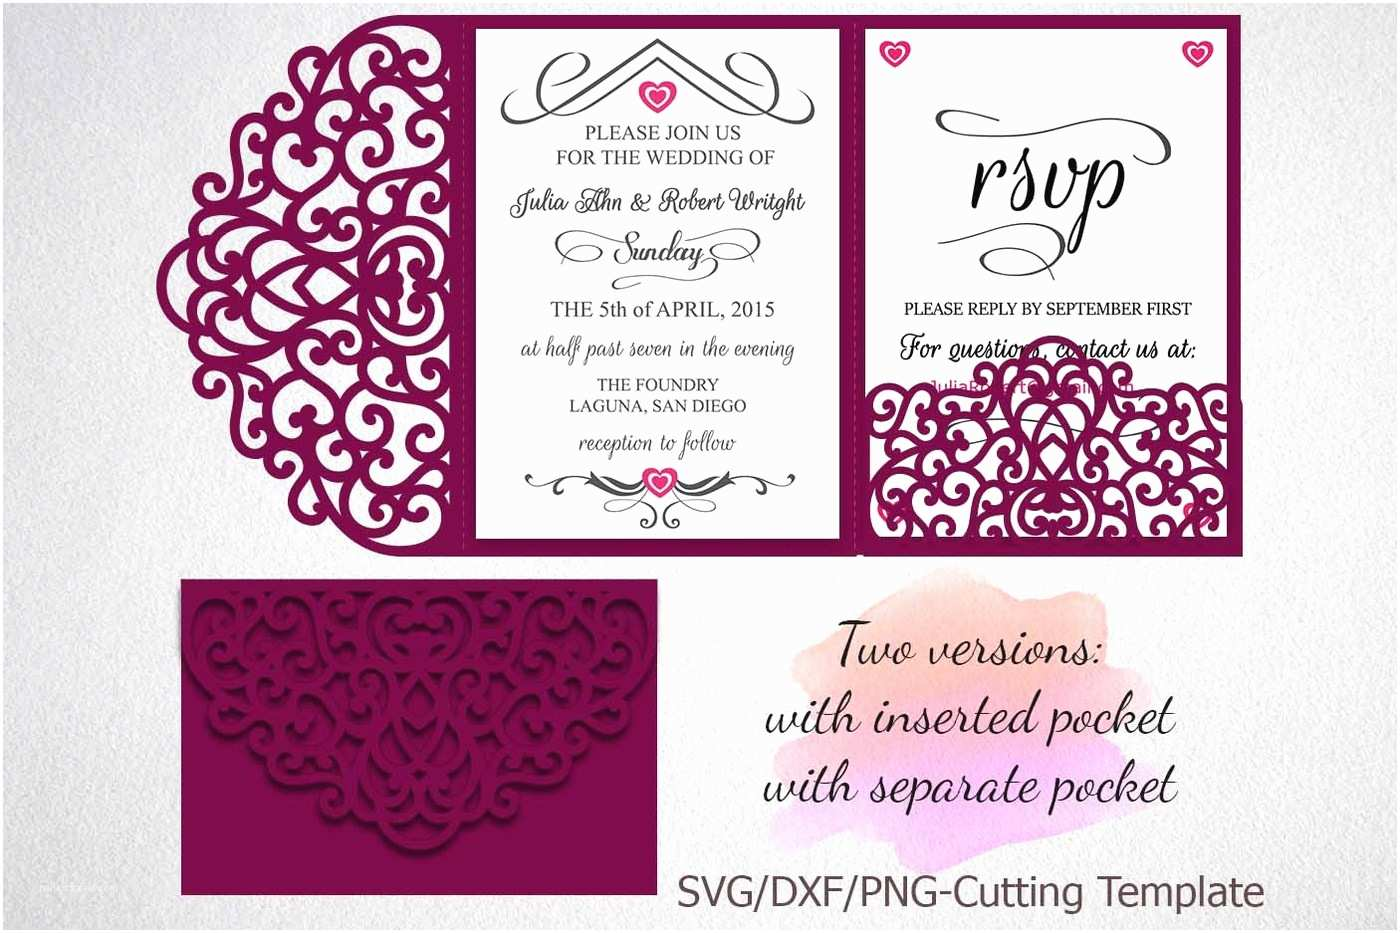 Tri Fold Wedding Invitations with Pocket Tri Fold Wedding Invitation Pocket Envelope Svg Template